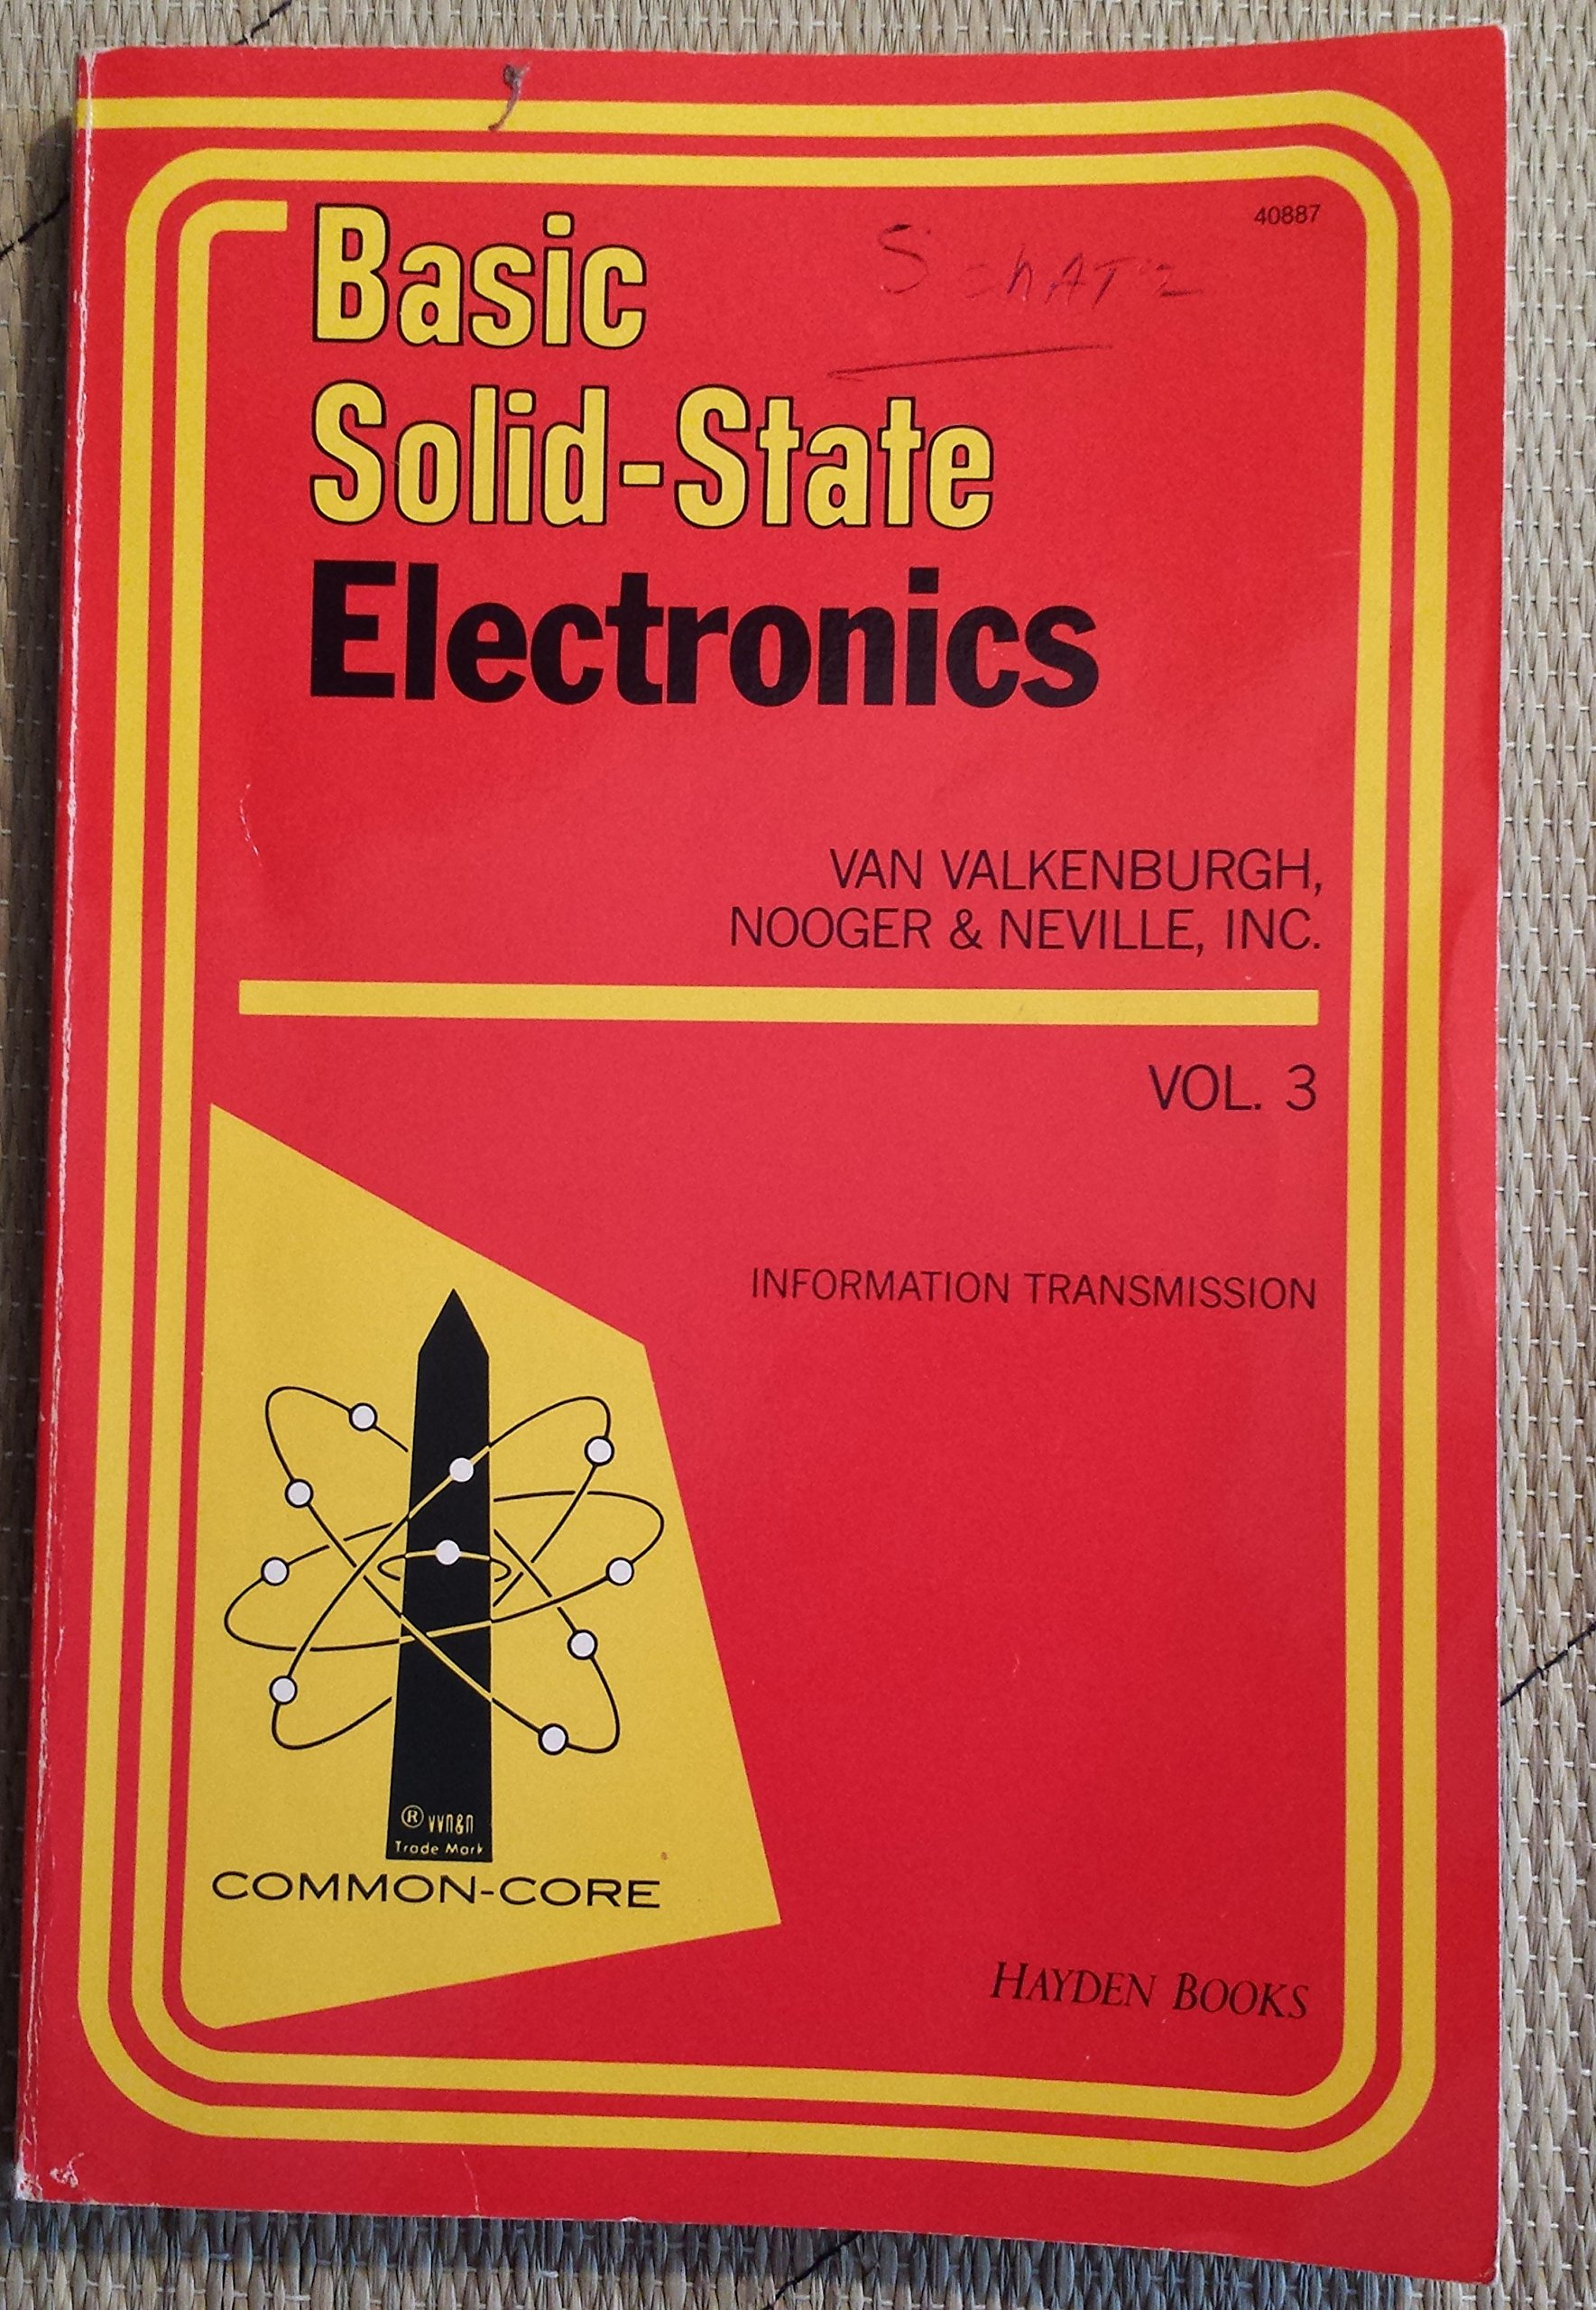 Basic Solid-State Electronics, Vol. 3: Information Transmission